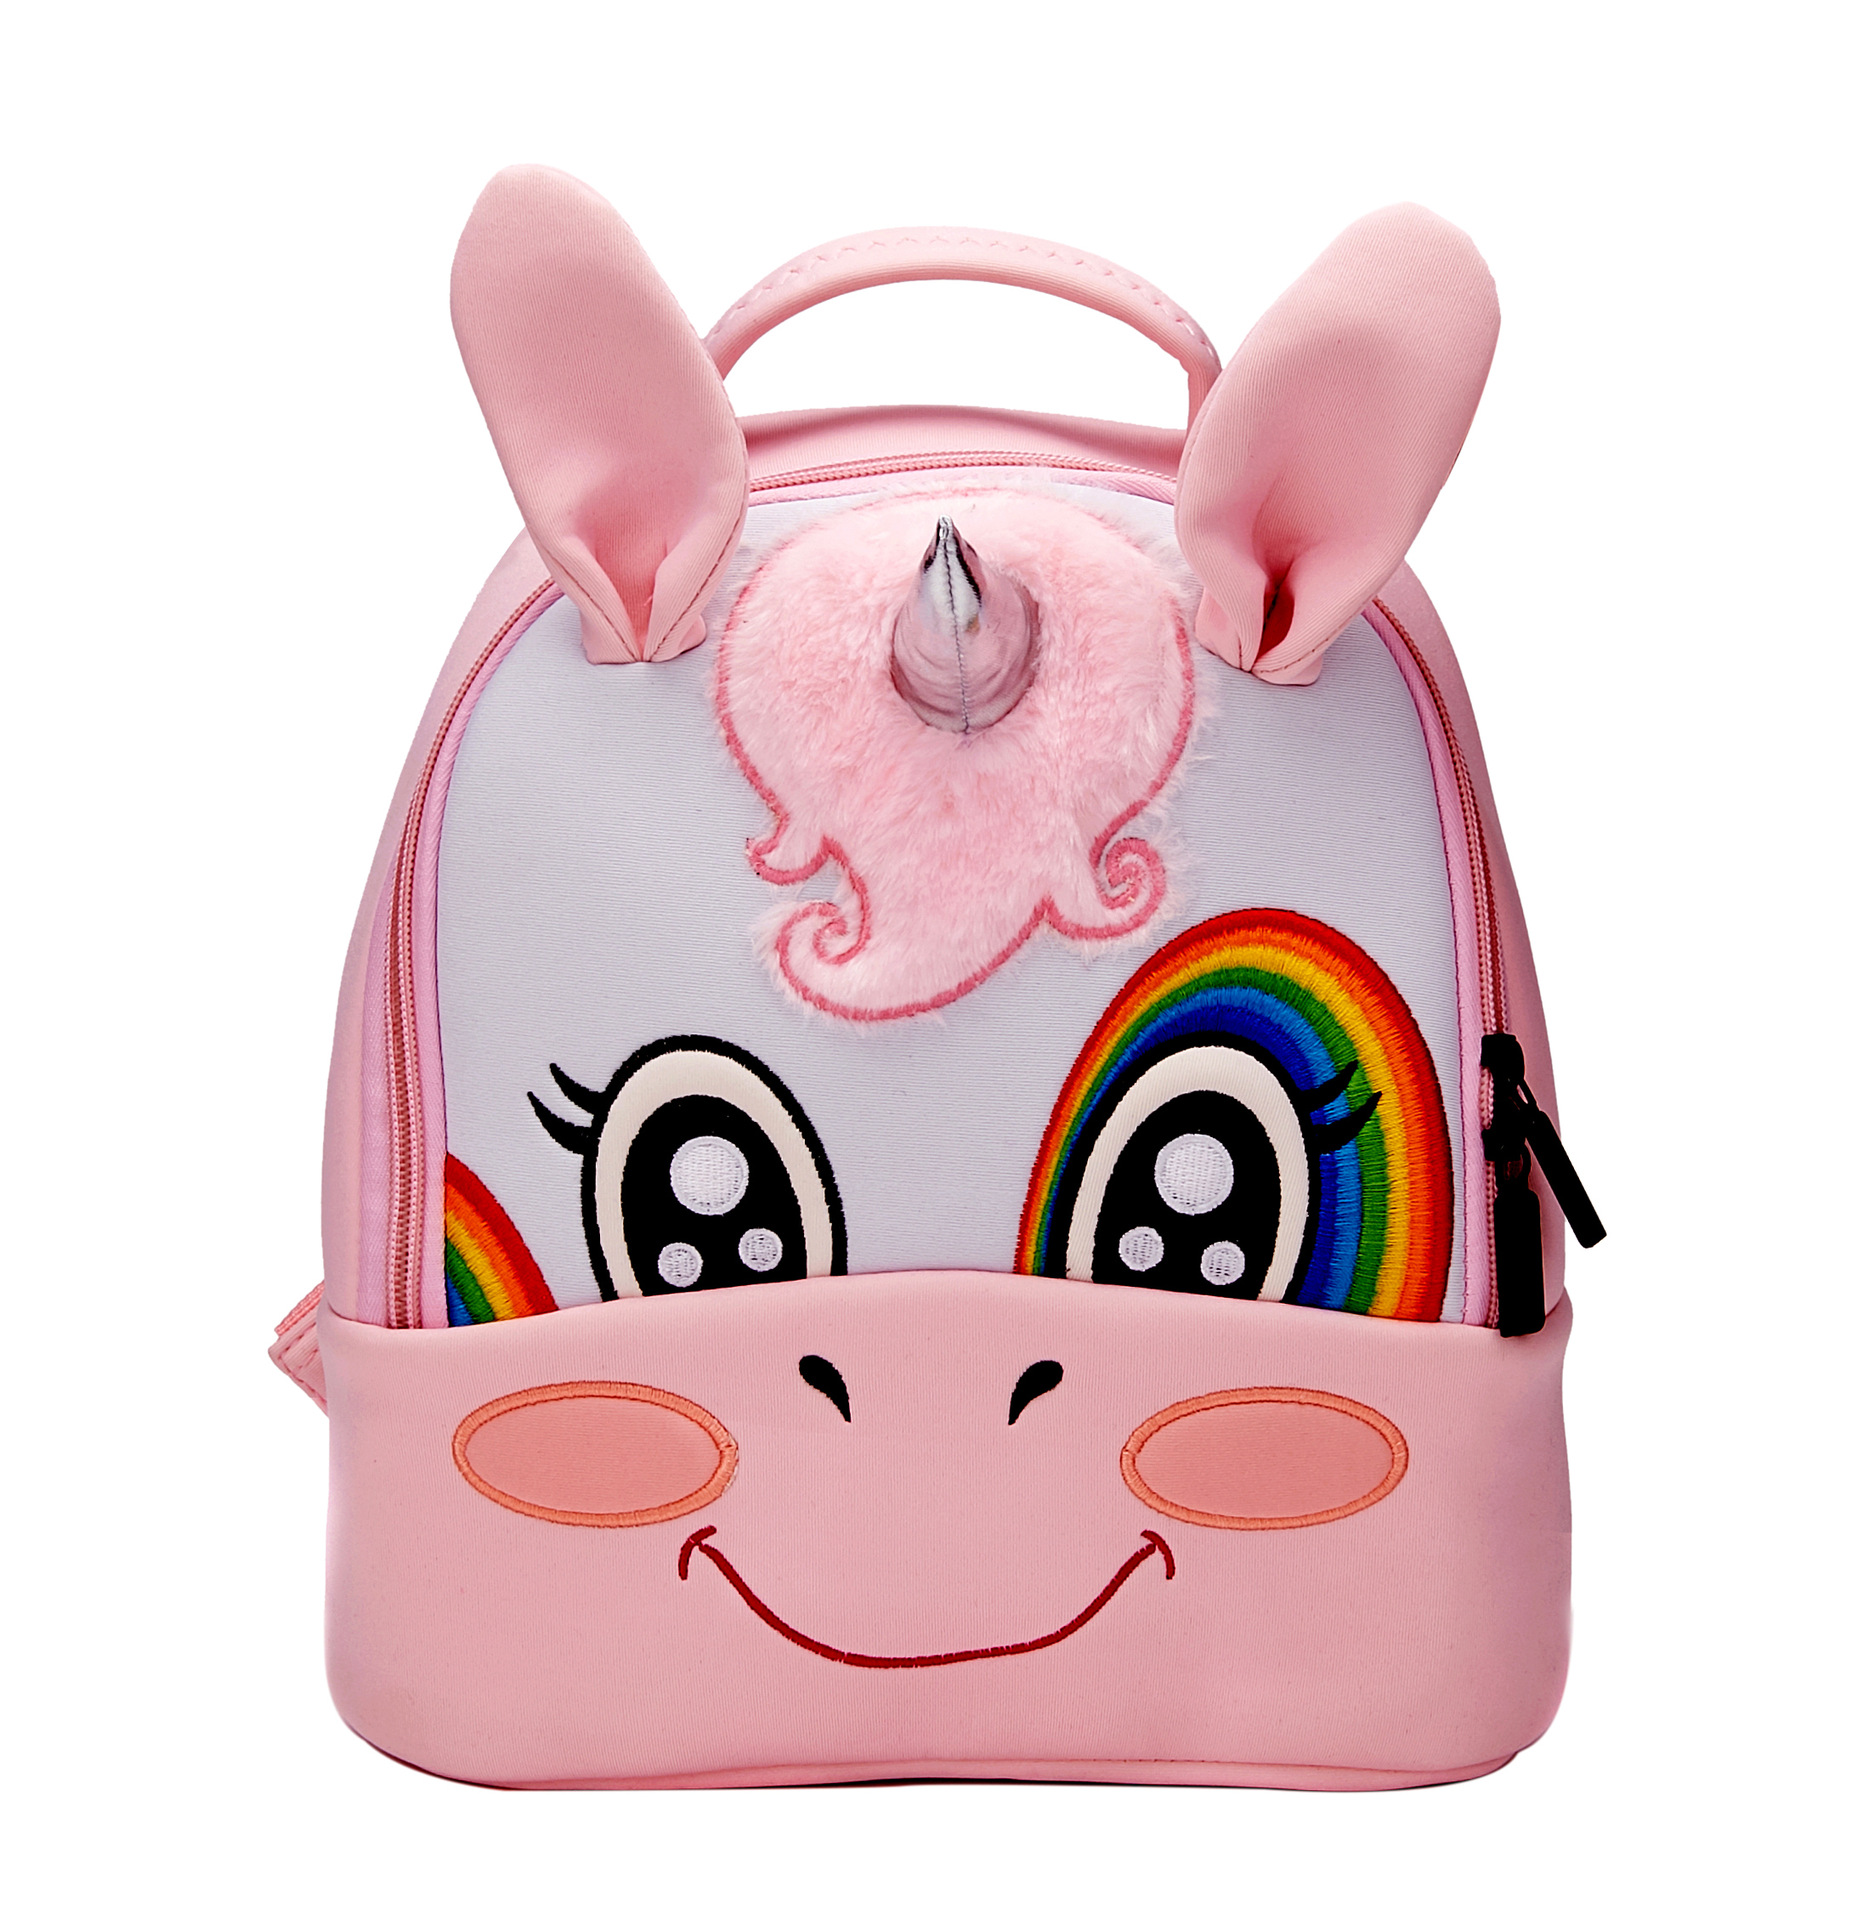 high quality neoprene backpack kids school 3d unicorn bag student school bag